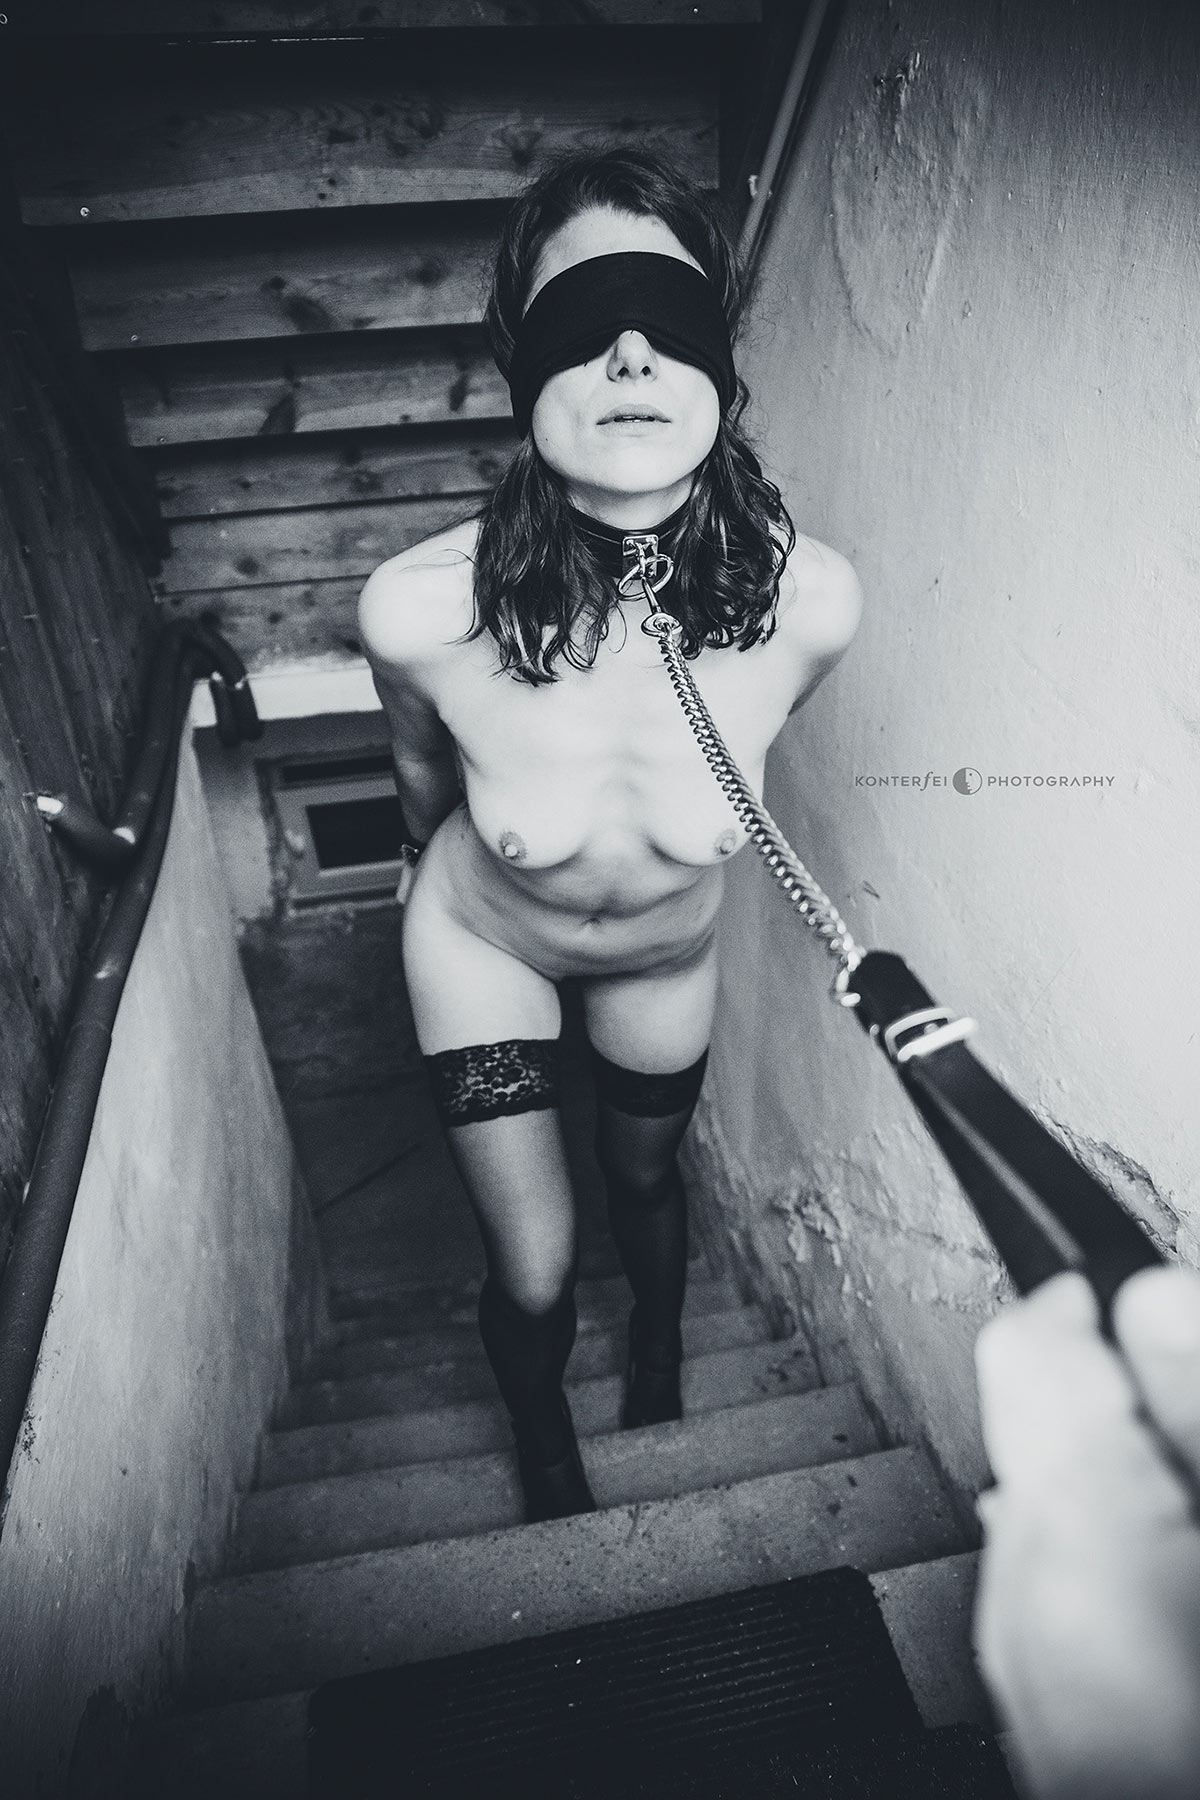 Follow me Blind | Fetish | Photography